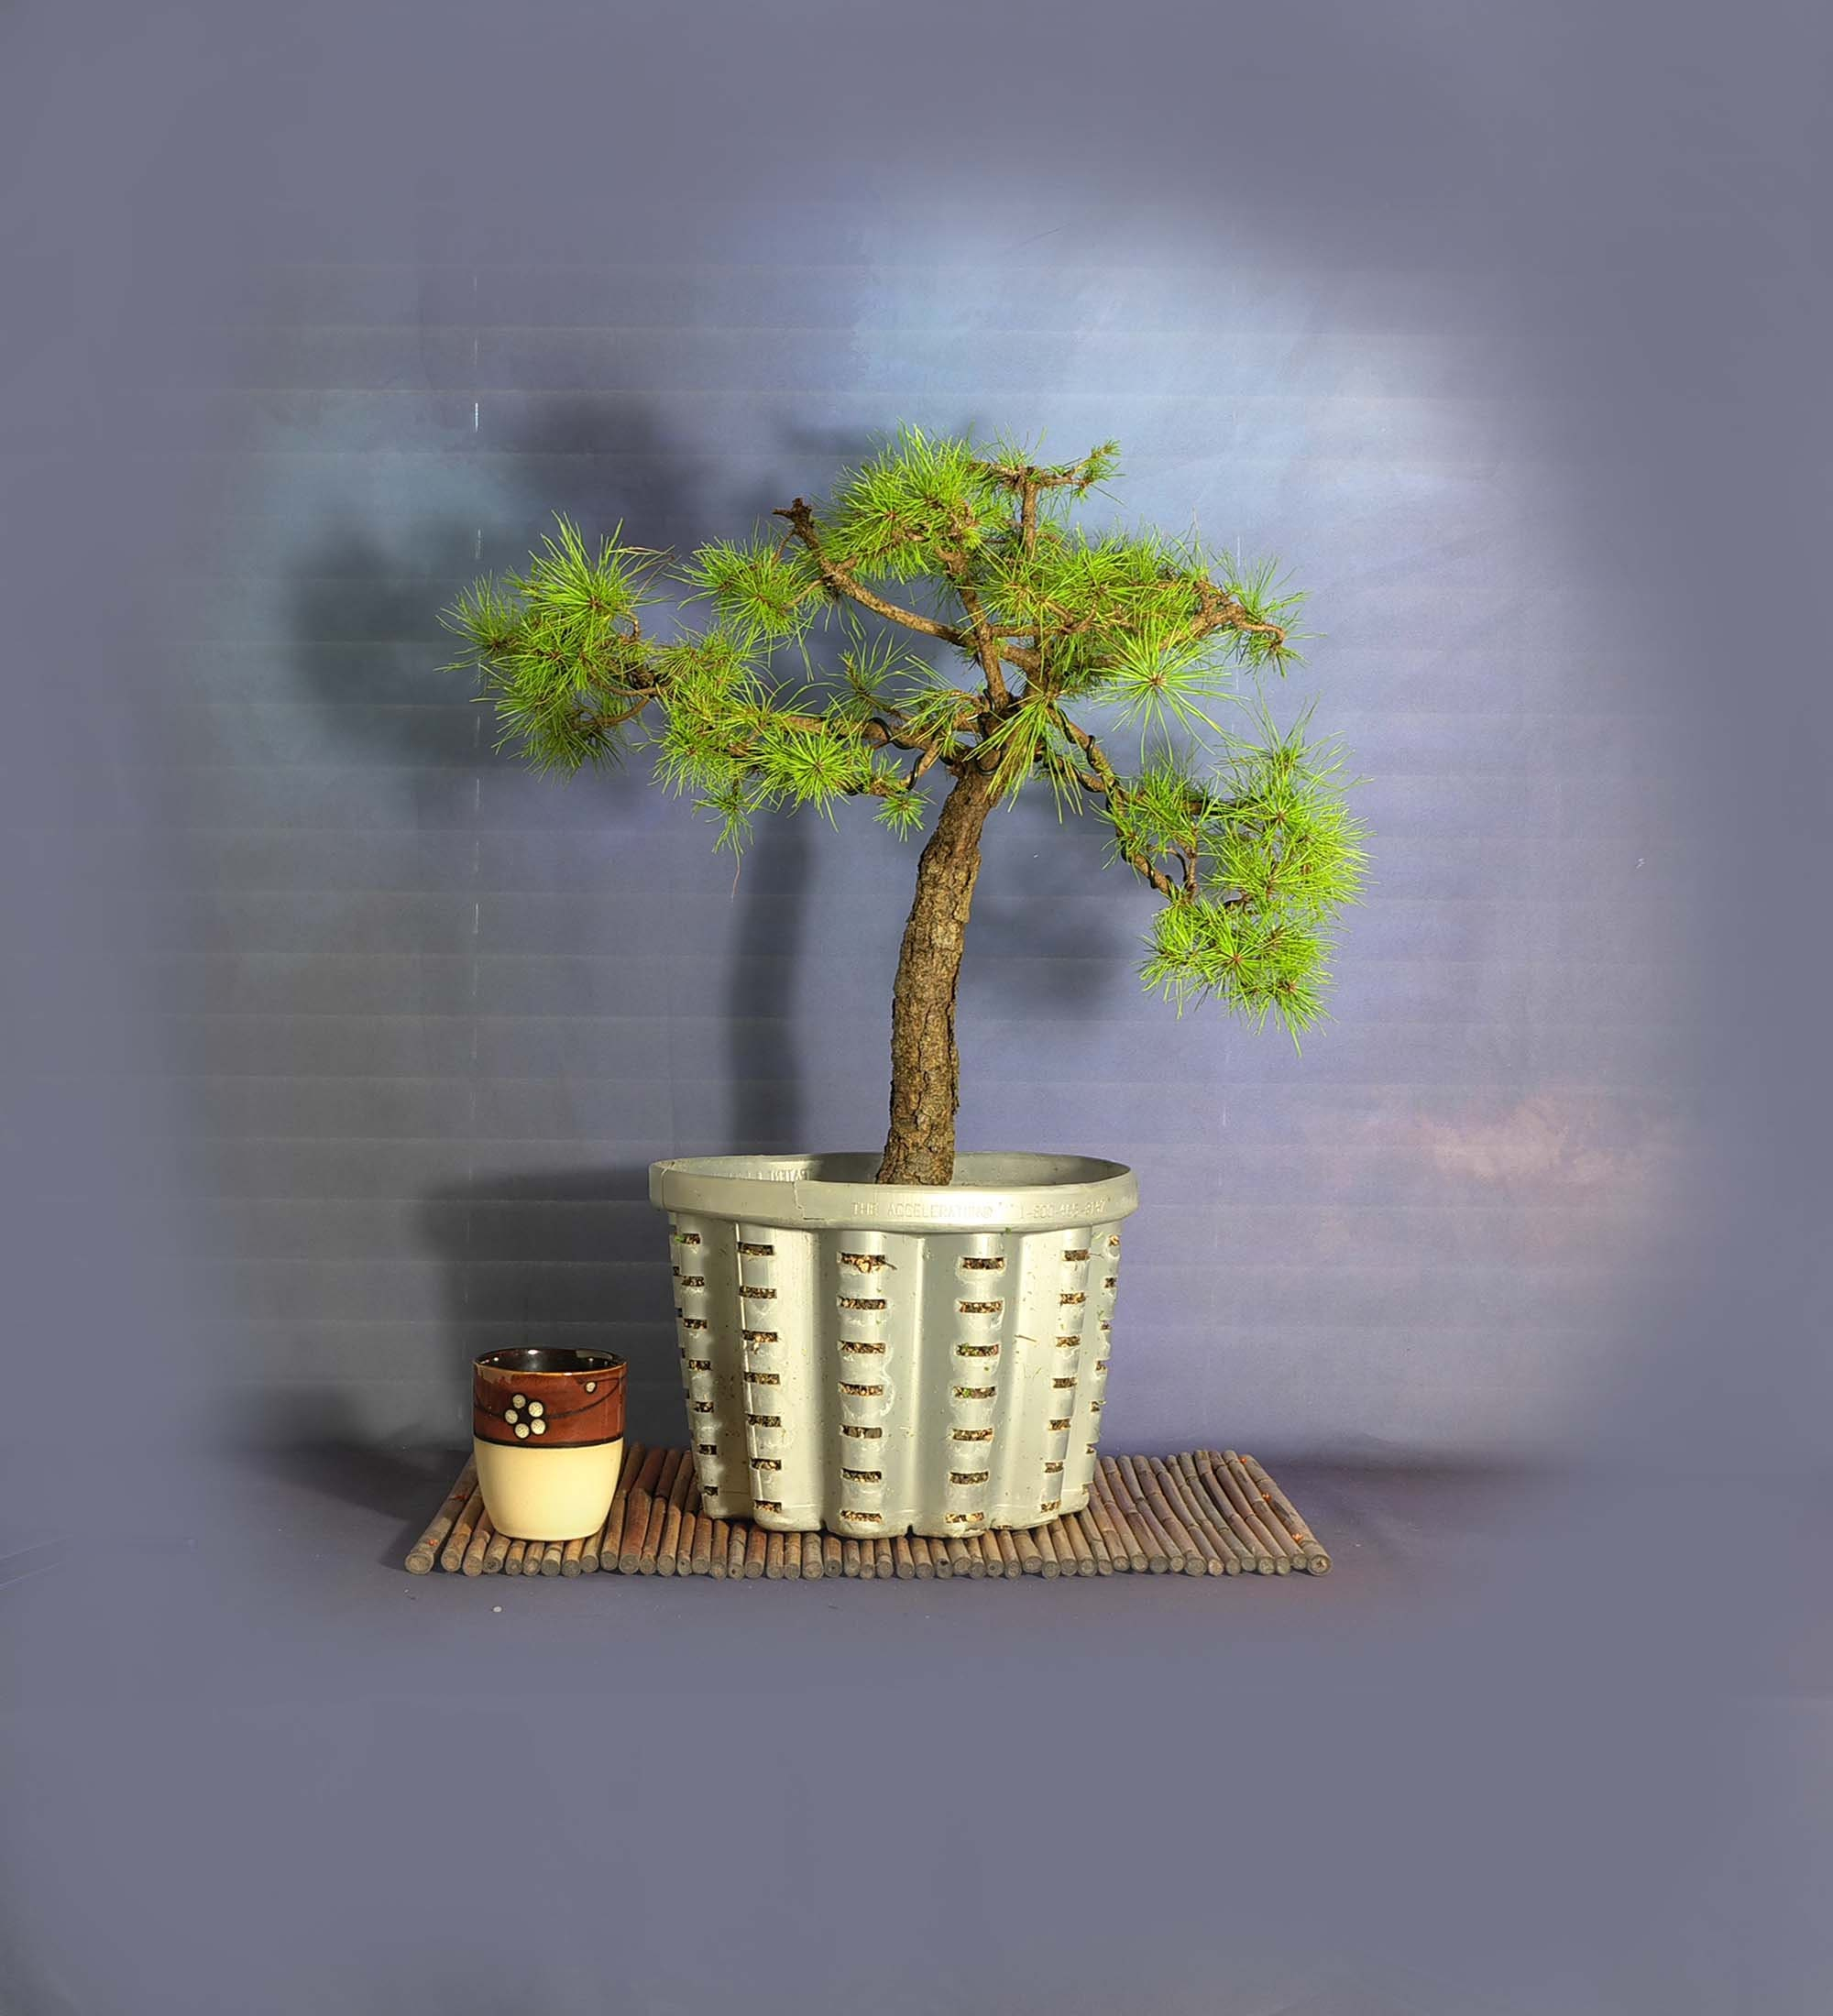 Rare Grafted Witches Broom Pine Bonsai Tree From Livebonsaitree